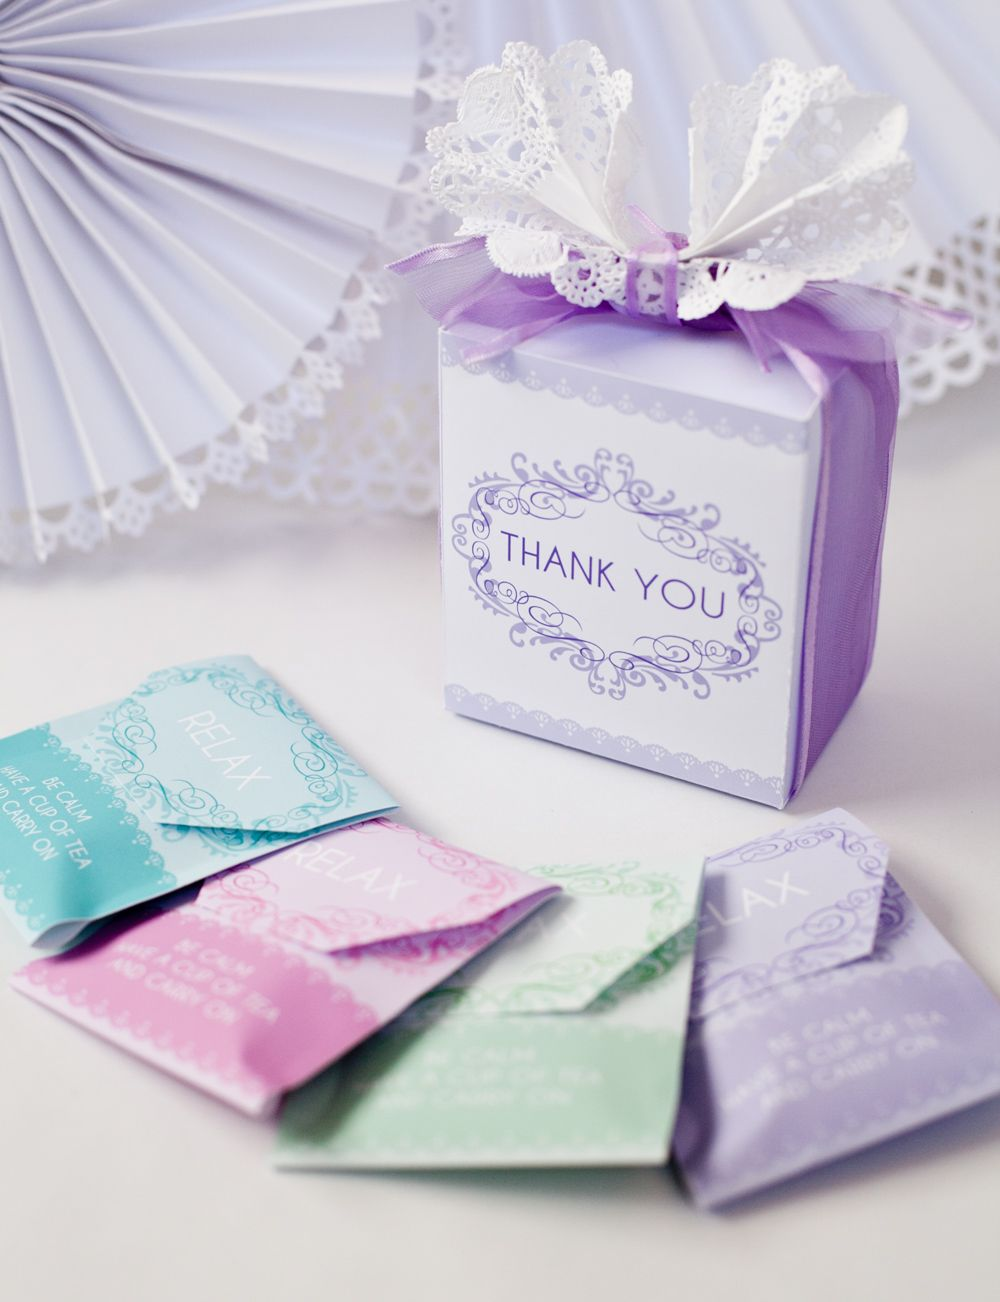 DIY: Baby Shower Tea Party Favor + Free Printable! | Baby shower tea ...